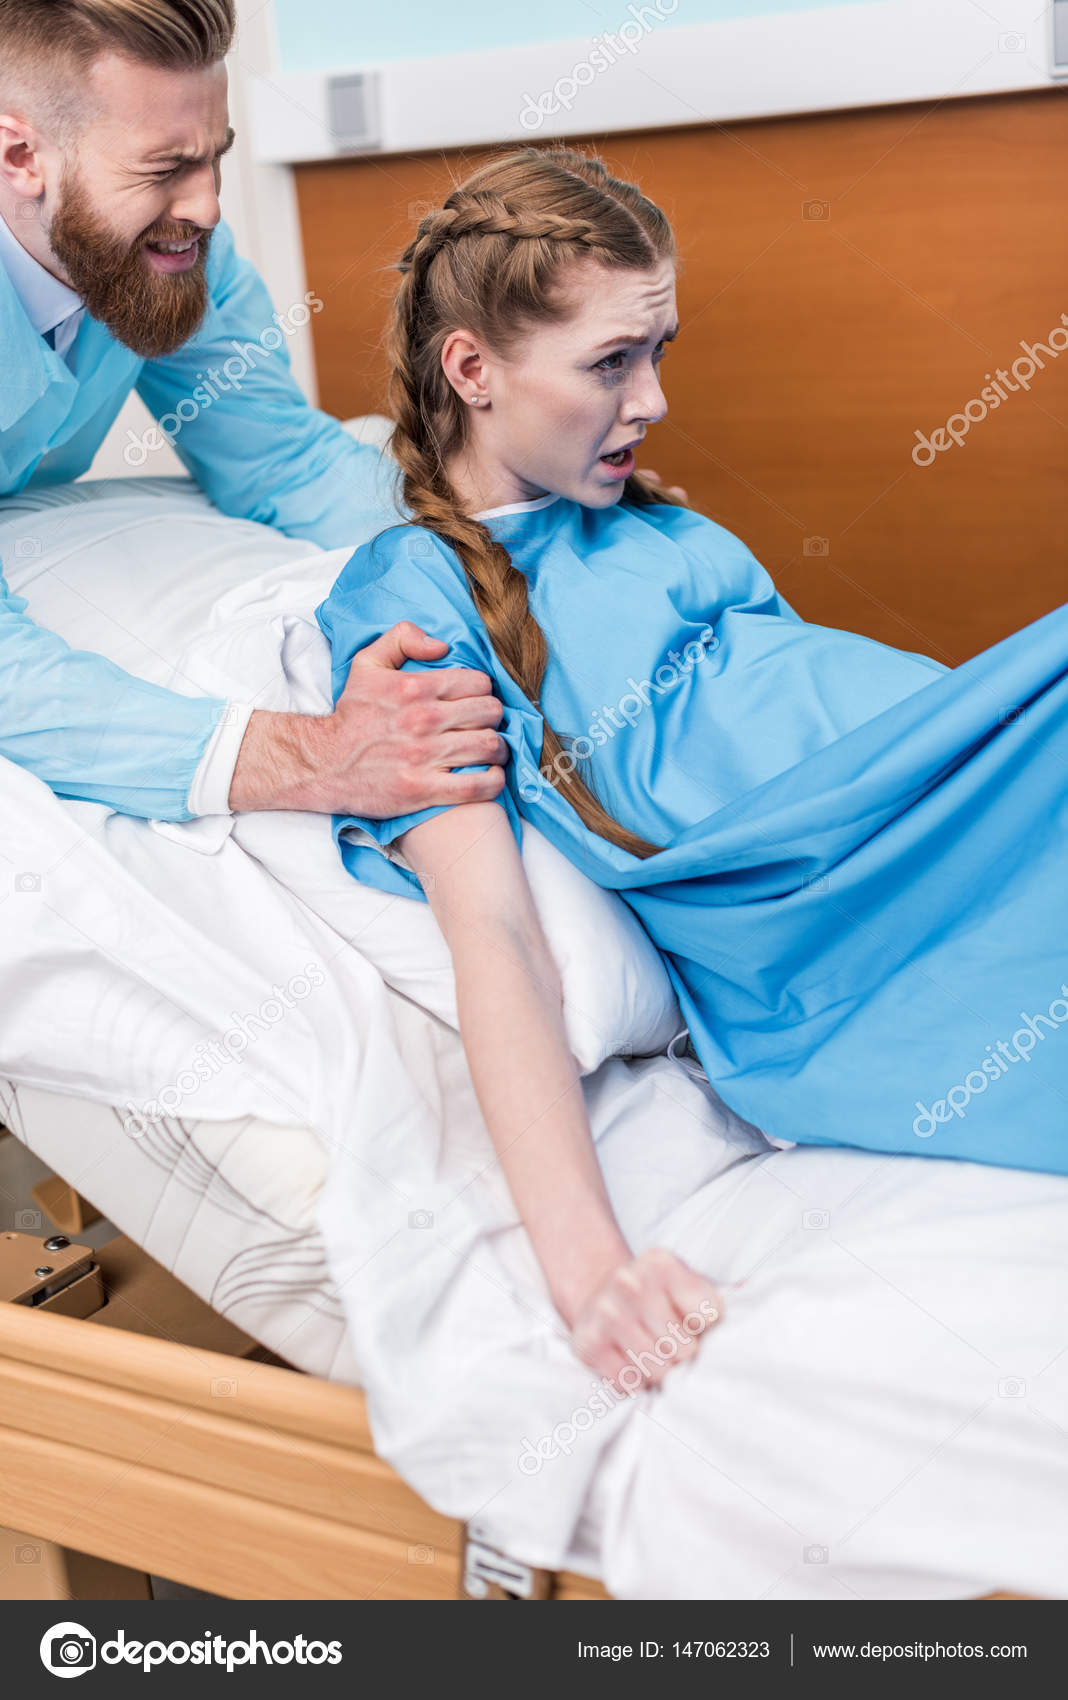 Lady Giving Birth >> Pregnant Woman Giving Birth Stock Photo C Andreybezuglov